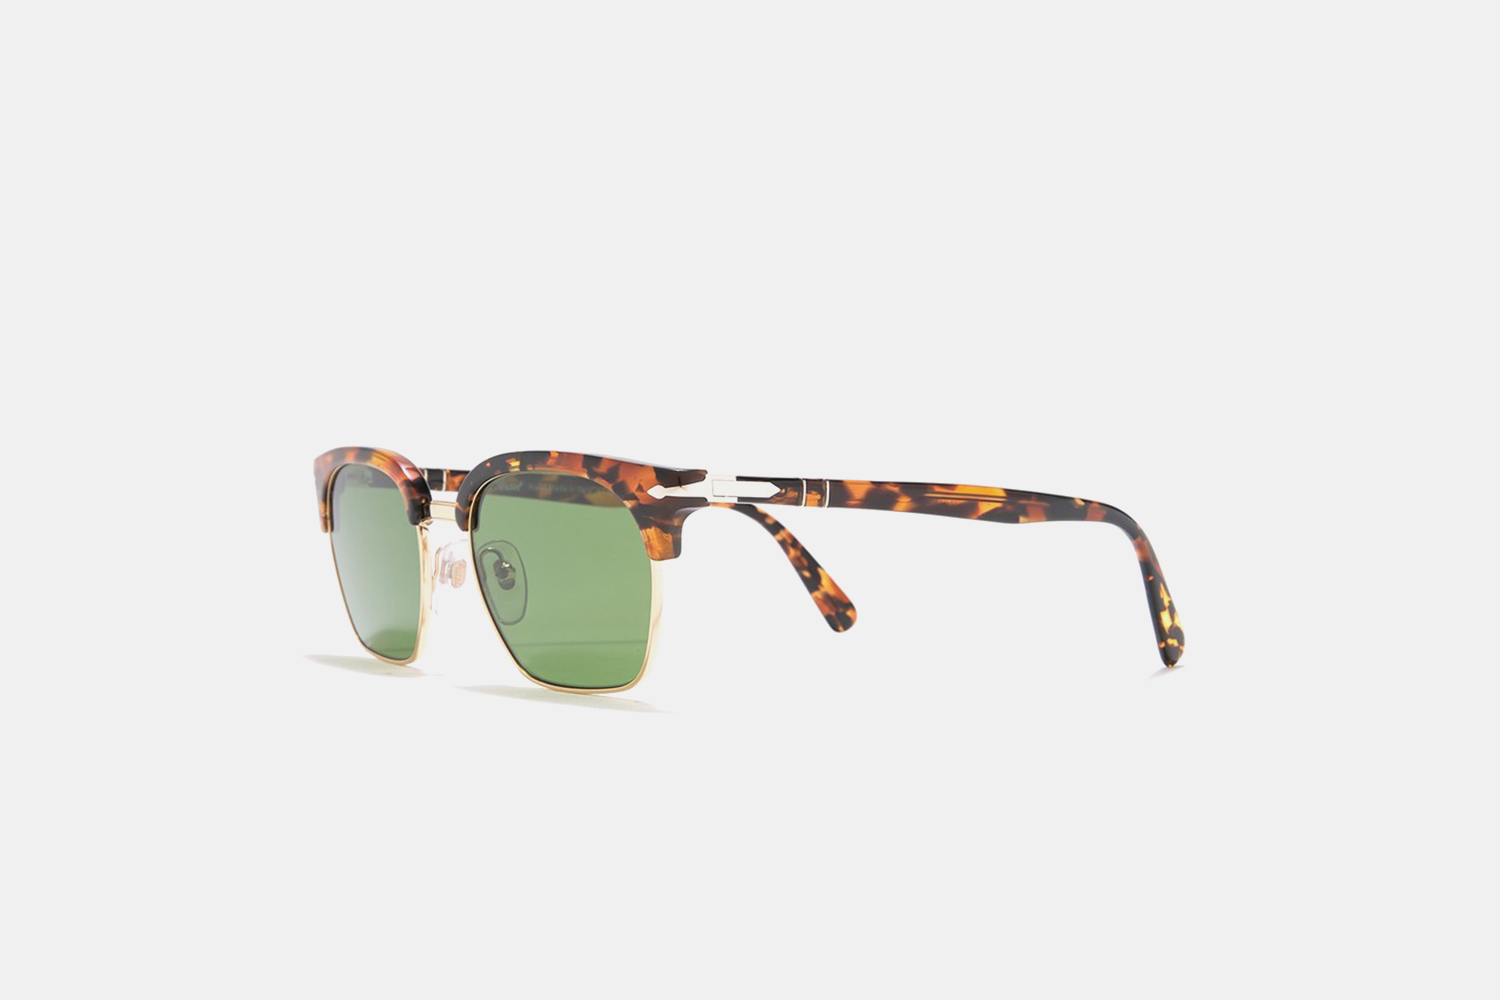 Deal: Get These Persol Sunglasses for Only $100